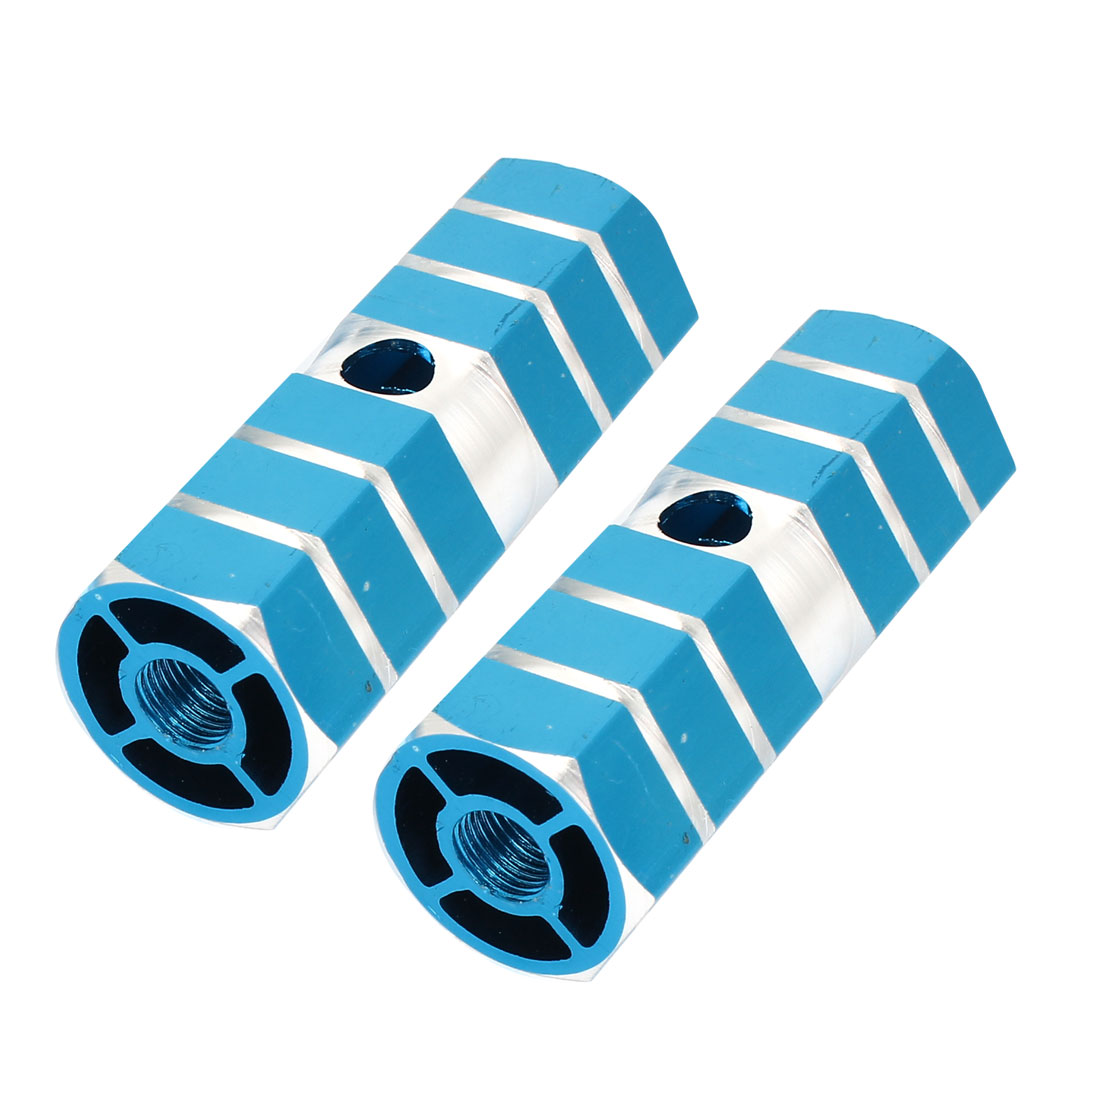 2 Pcs Blue Aluminum Nonslip Axle Foot Pegs For BMX Mountain Bike Bicycle Cyling